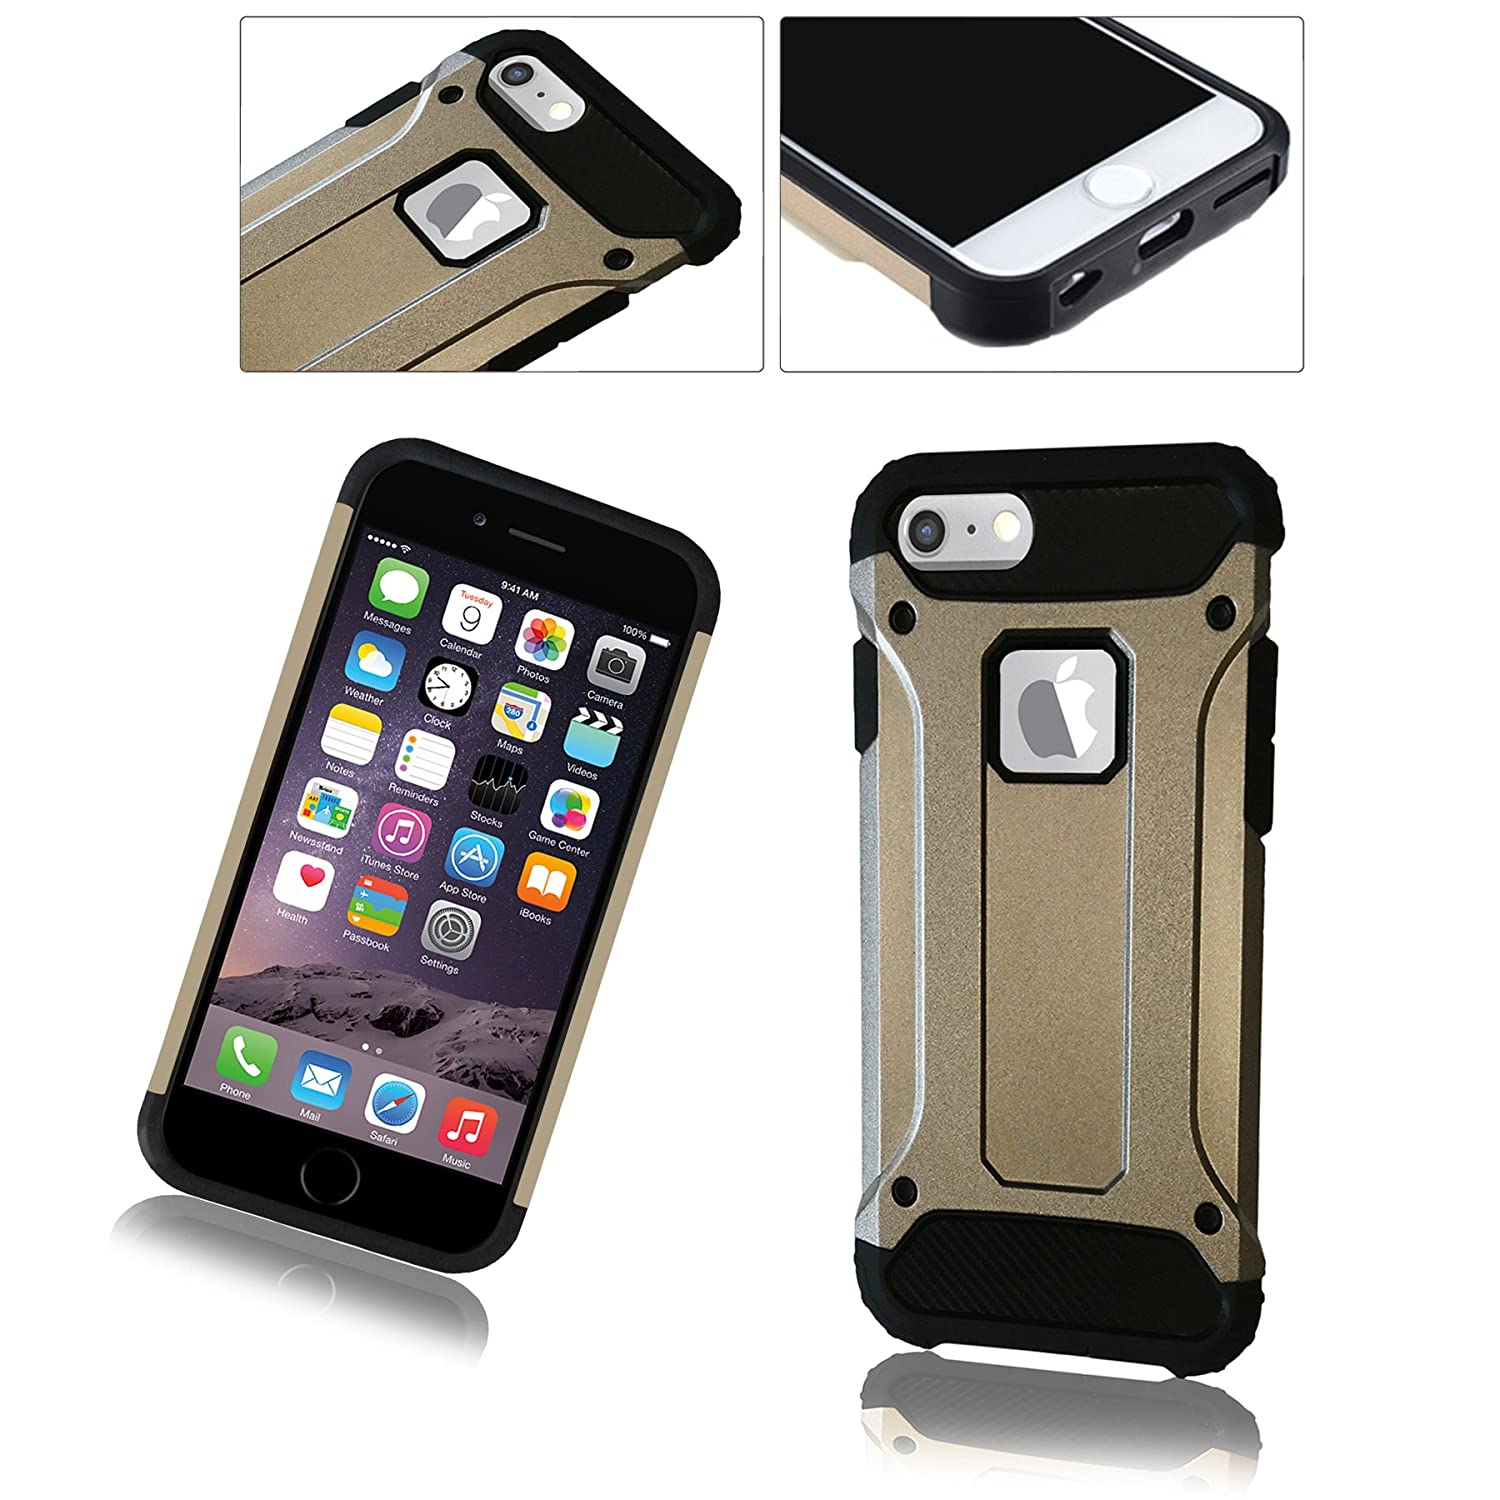 8bd2b6ec1eff03 Mobile Gear FOR APPLE IPHONE 5